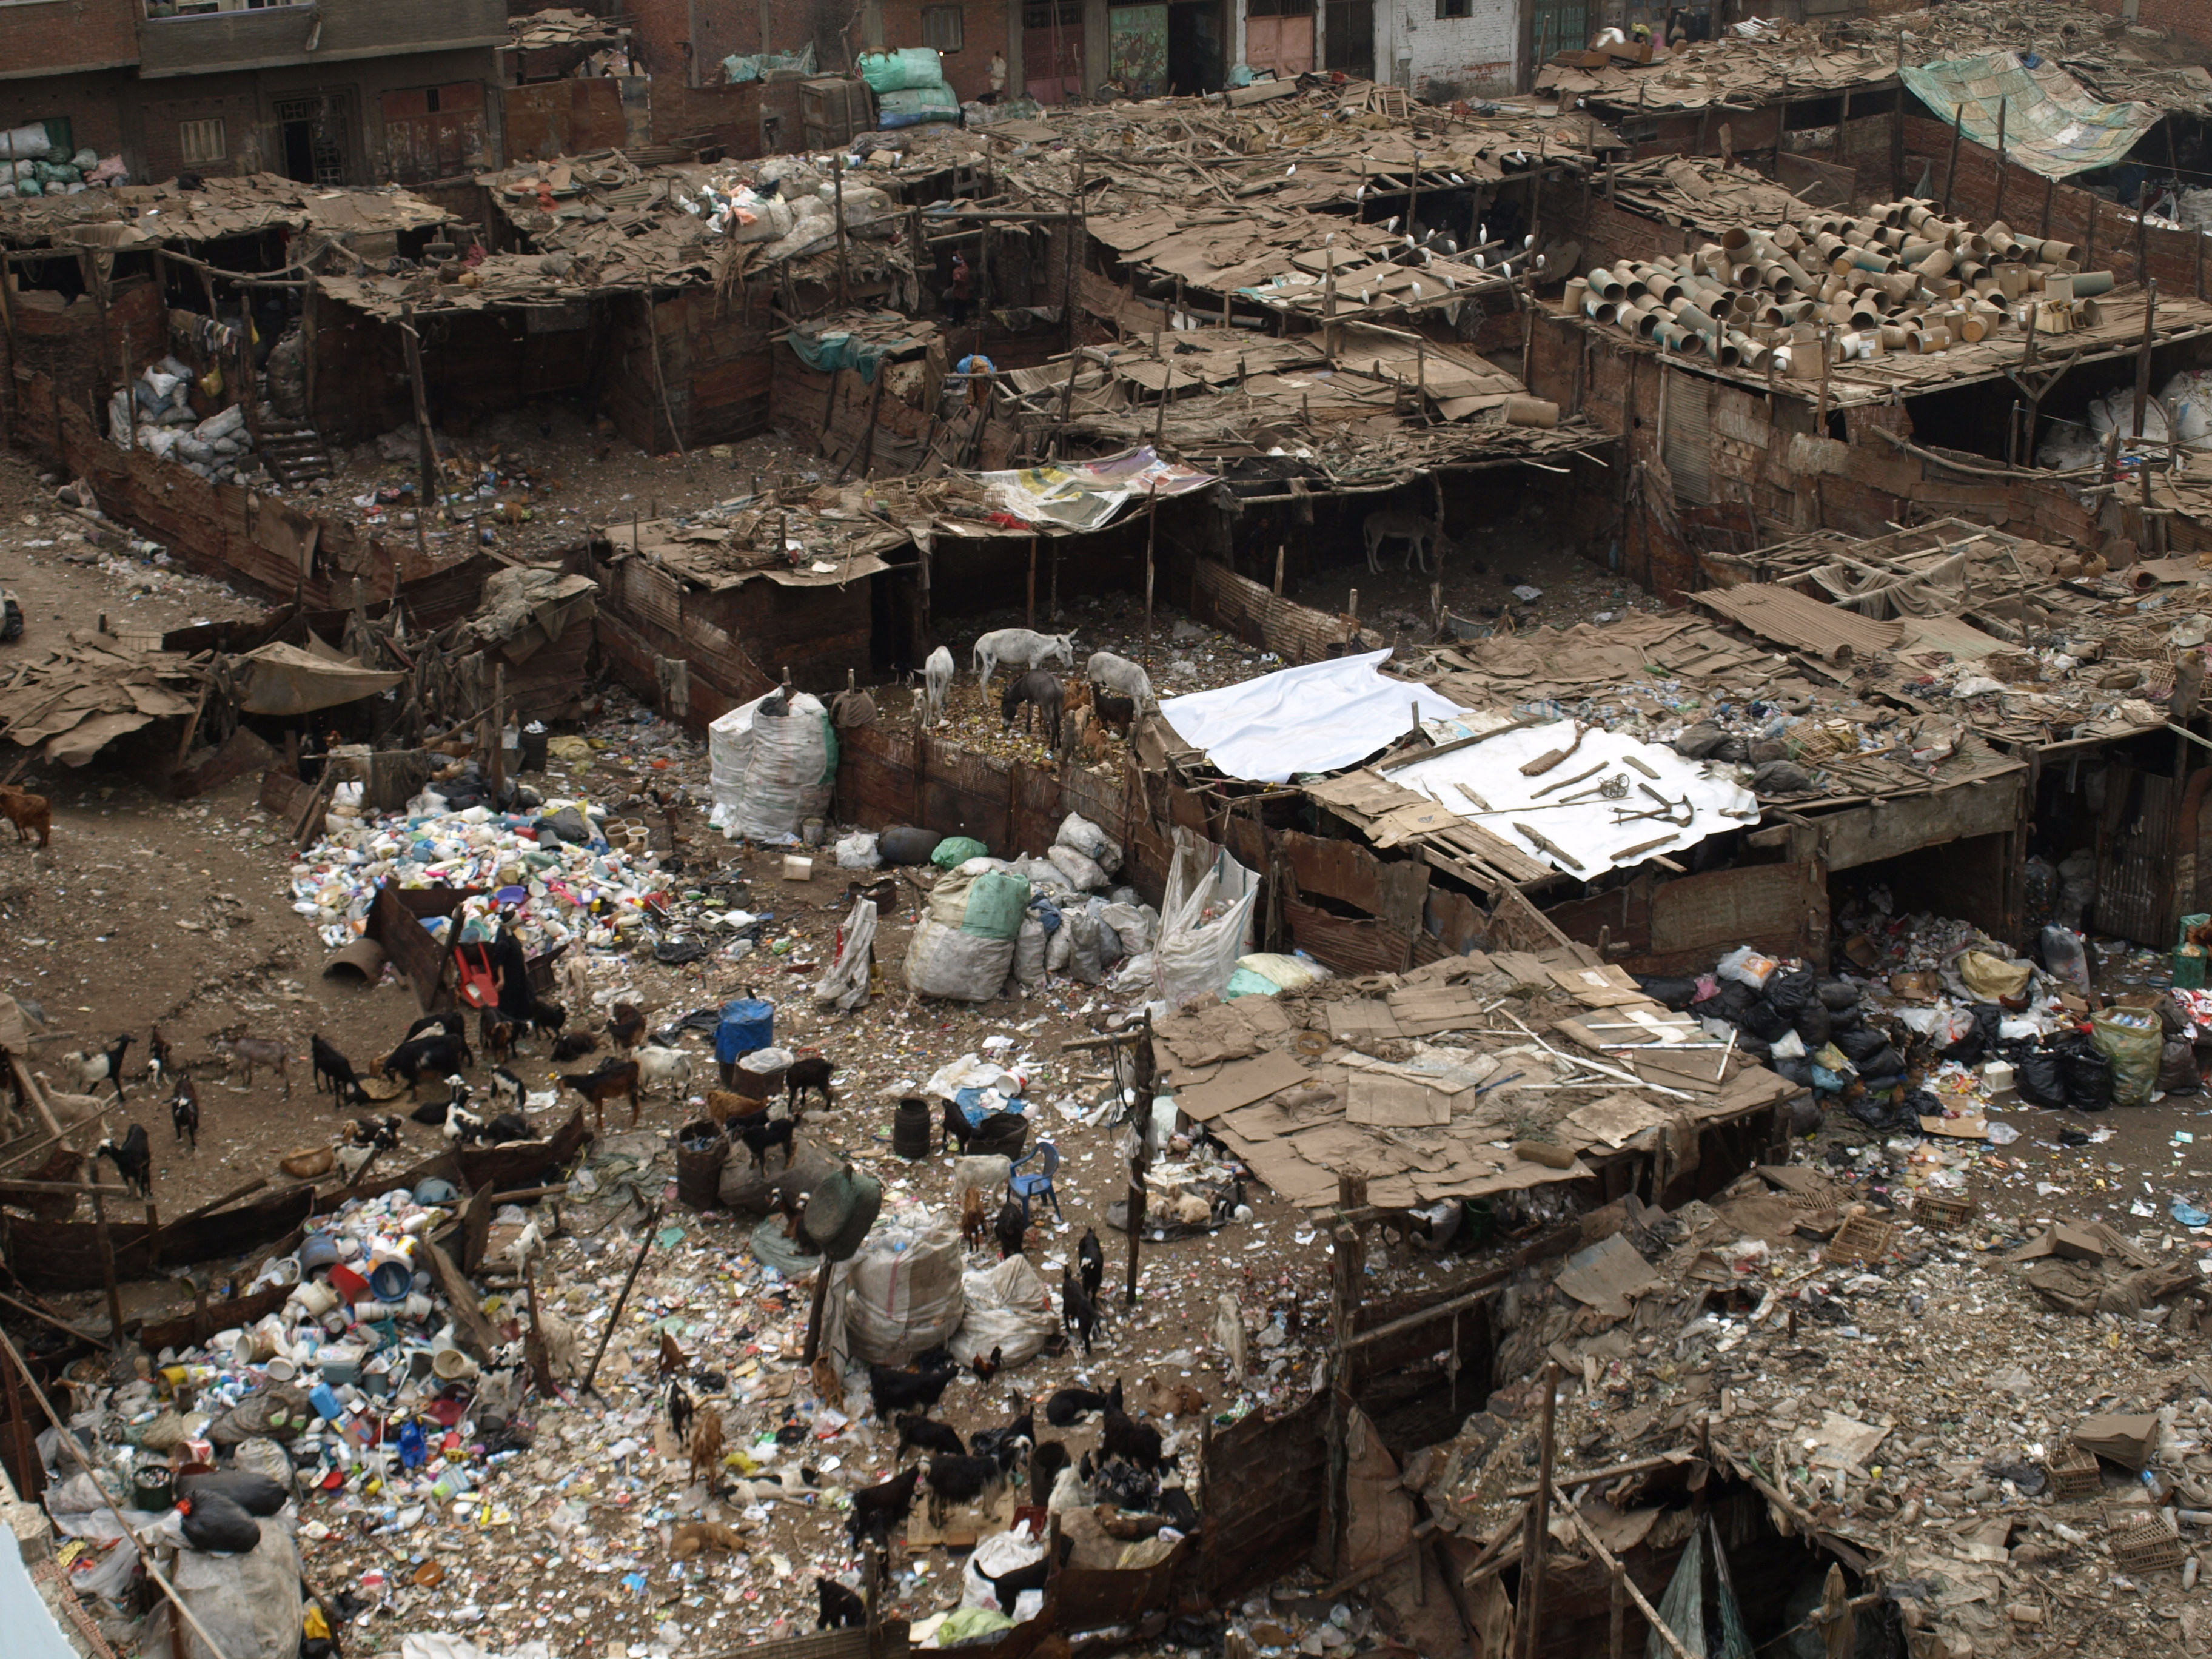 Dharavi Houses Building Up Rather Than Out